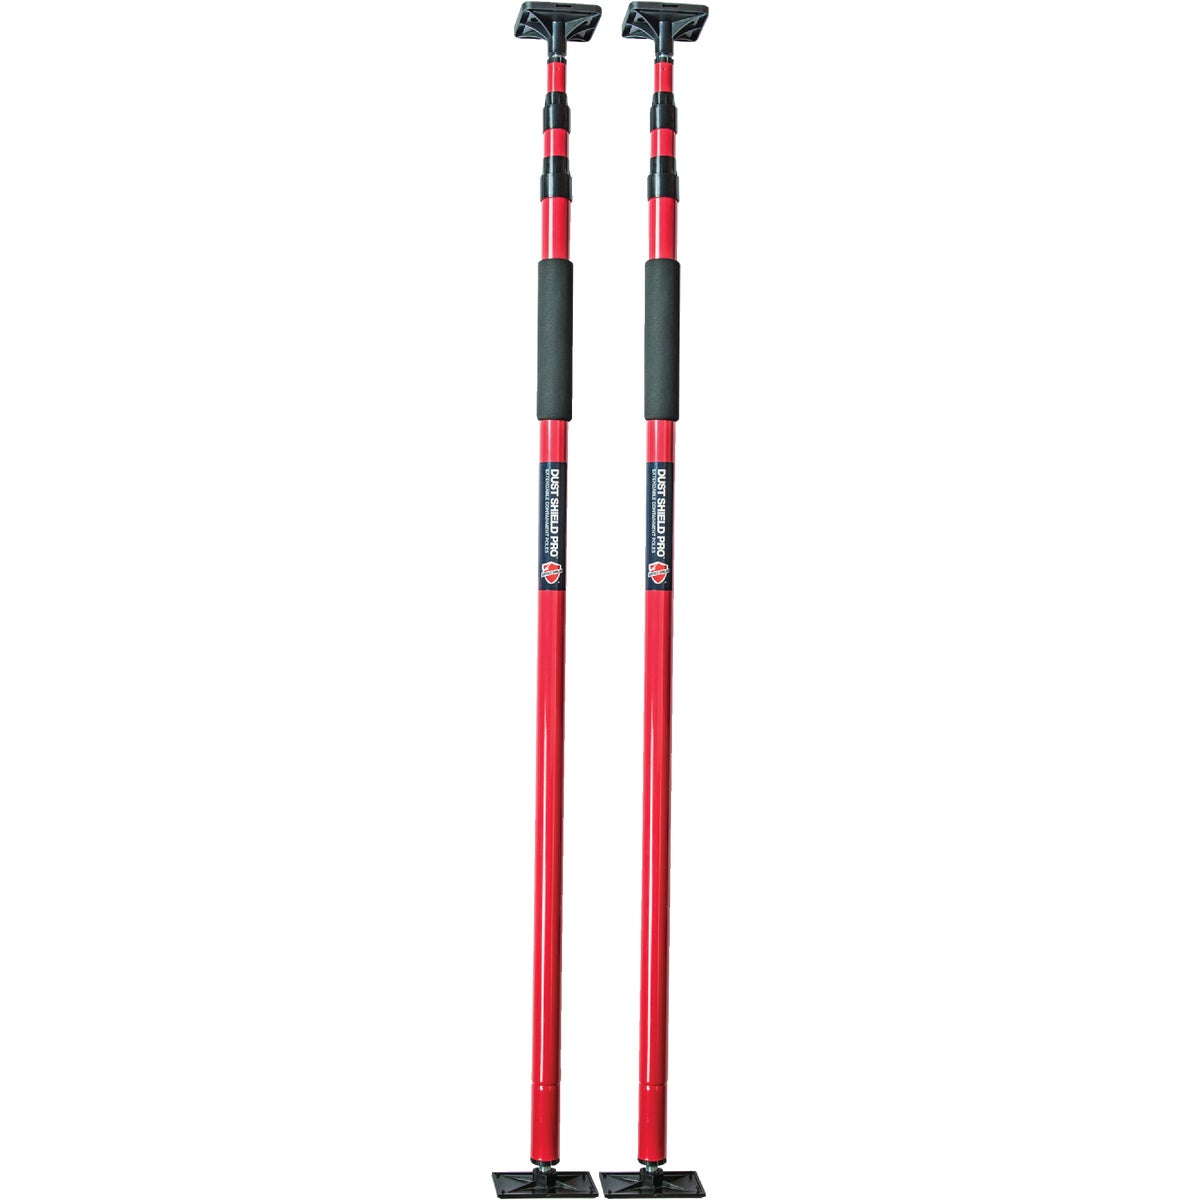 2PK ADJUSTABLE PRO POLES